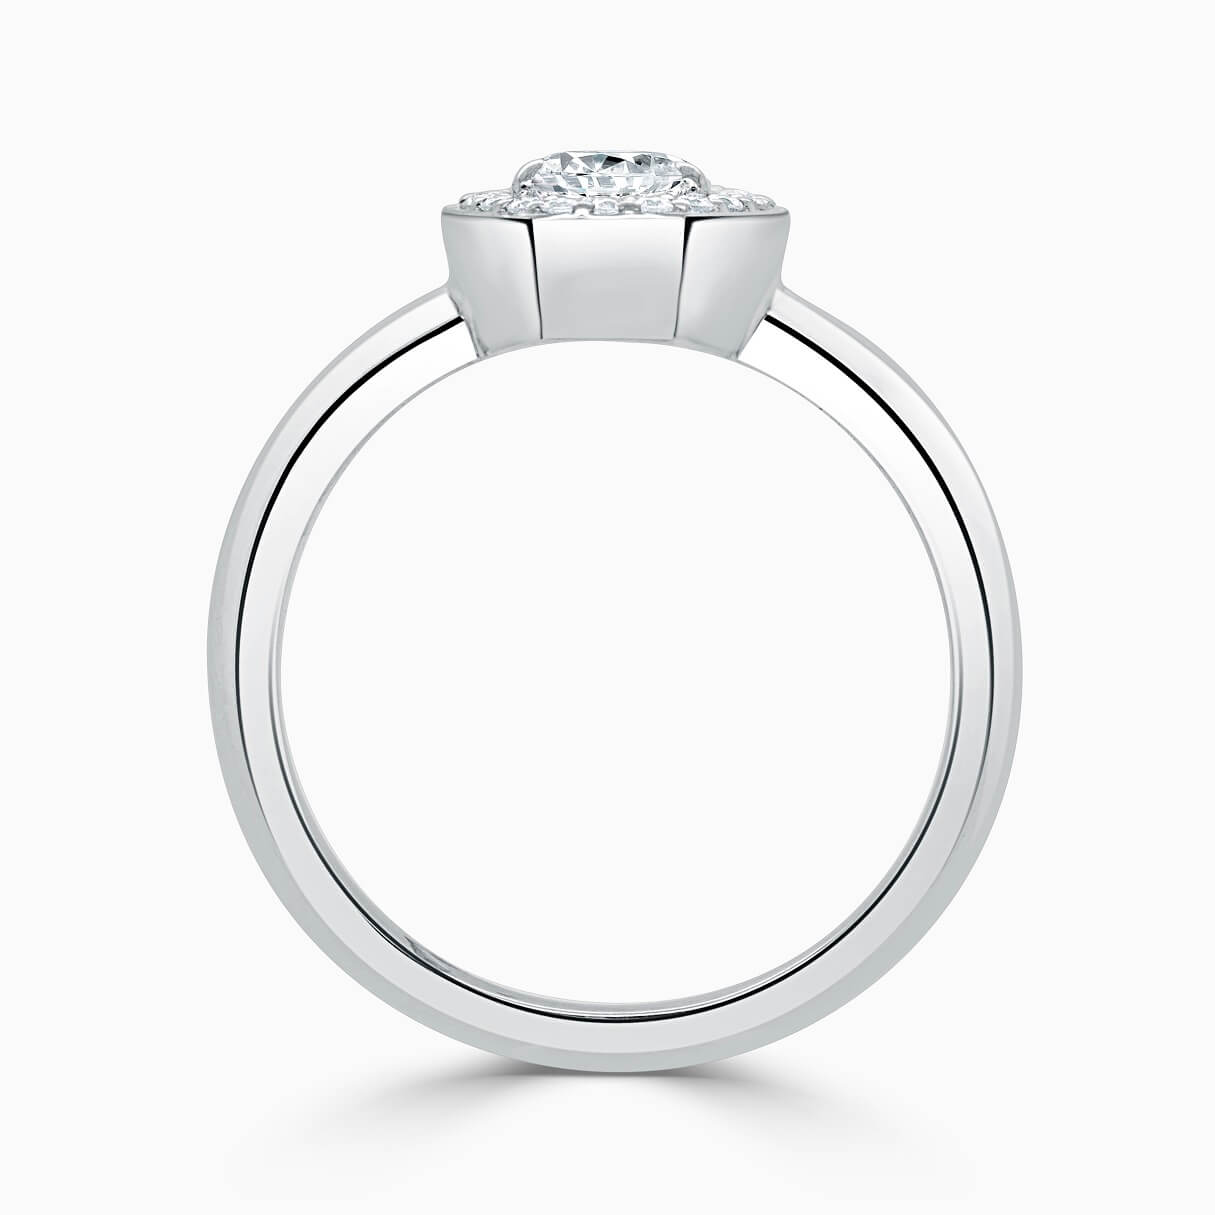 18ct White Gold Pear Shape Knife Edge Geo Halo Engagement Ring